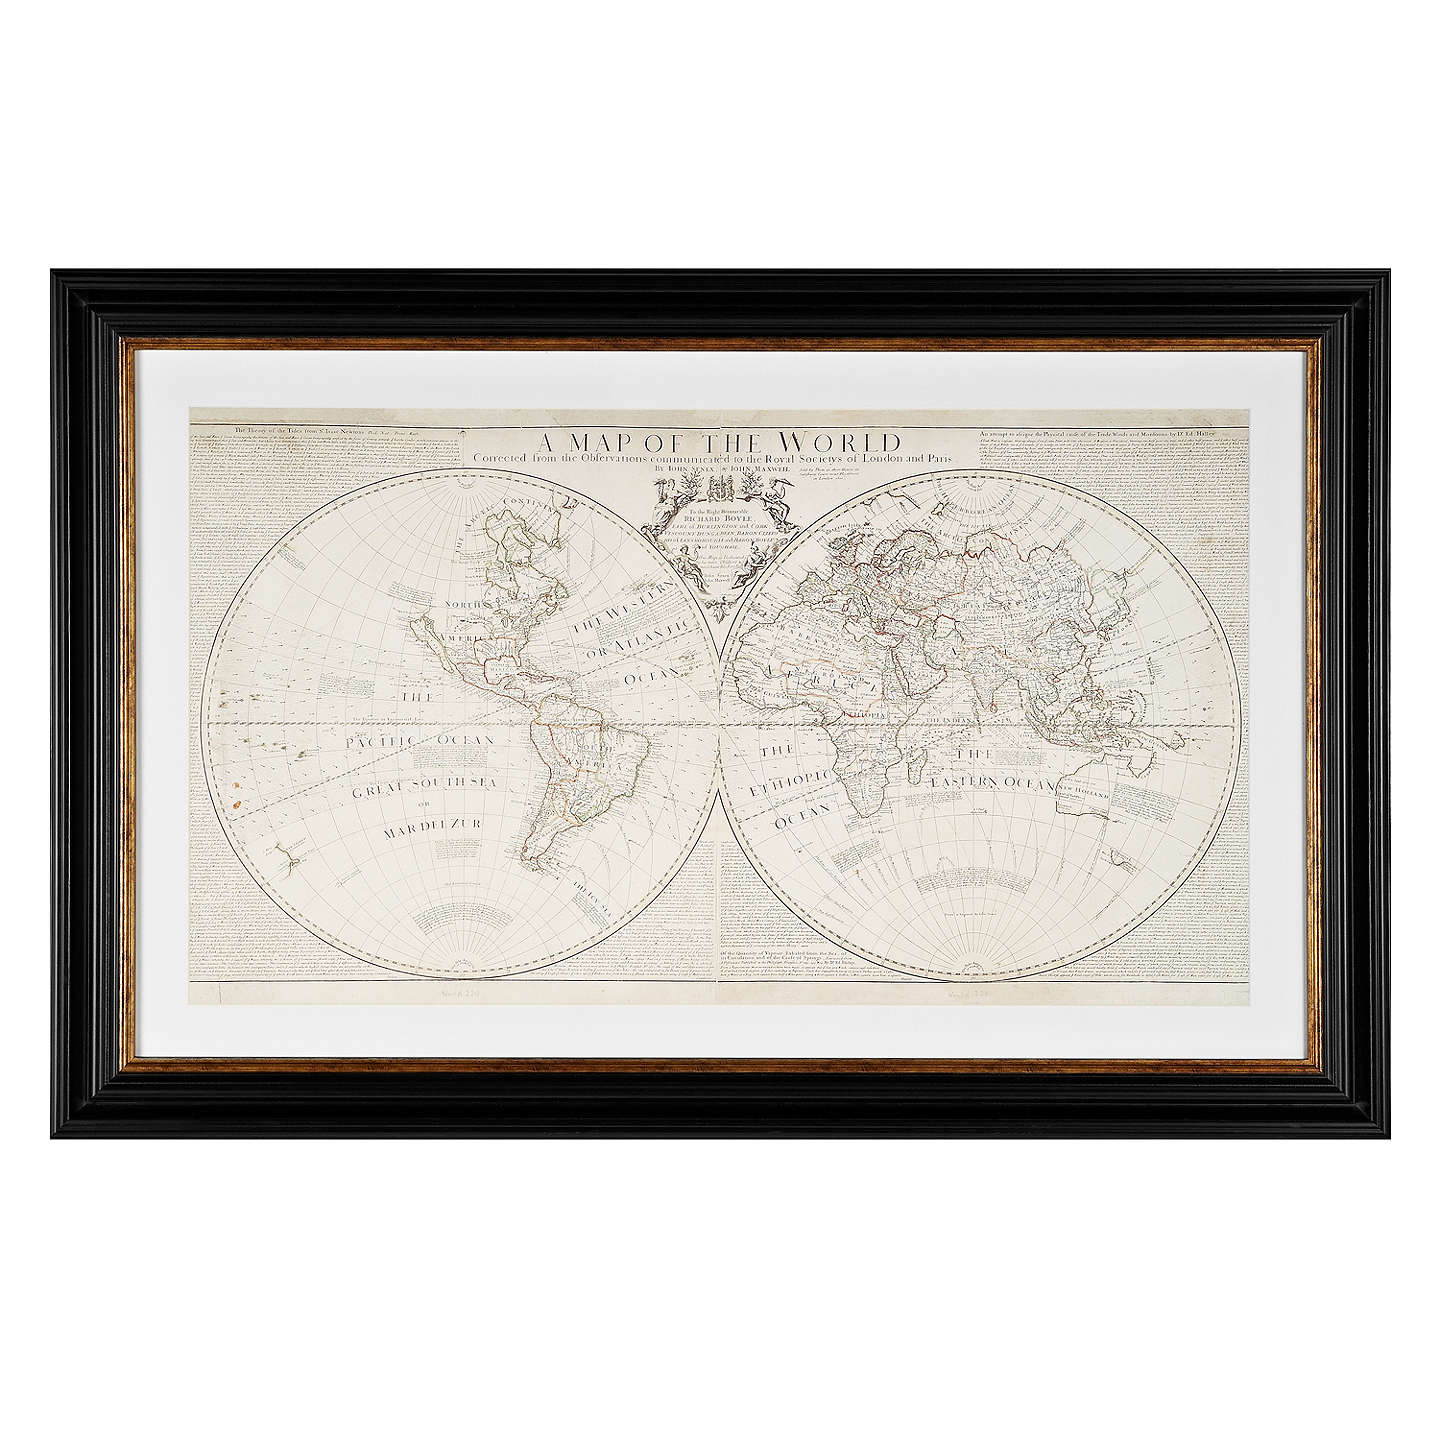 Anonymous world map framed print 74 x 108cm at john lewis buyanonymous world map framed print 74 x 108cm online at johnlewis gumiabroncs Choice Image